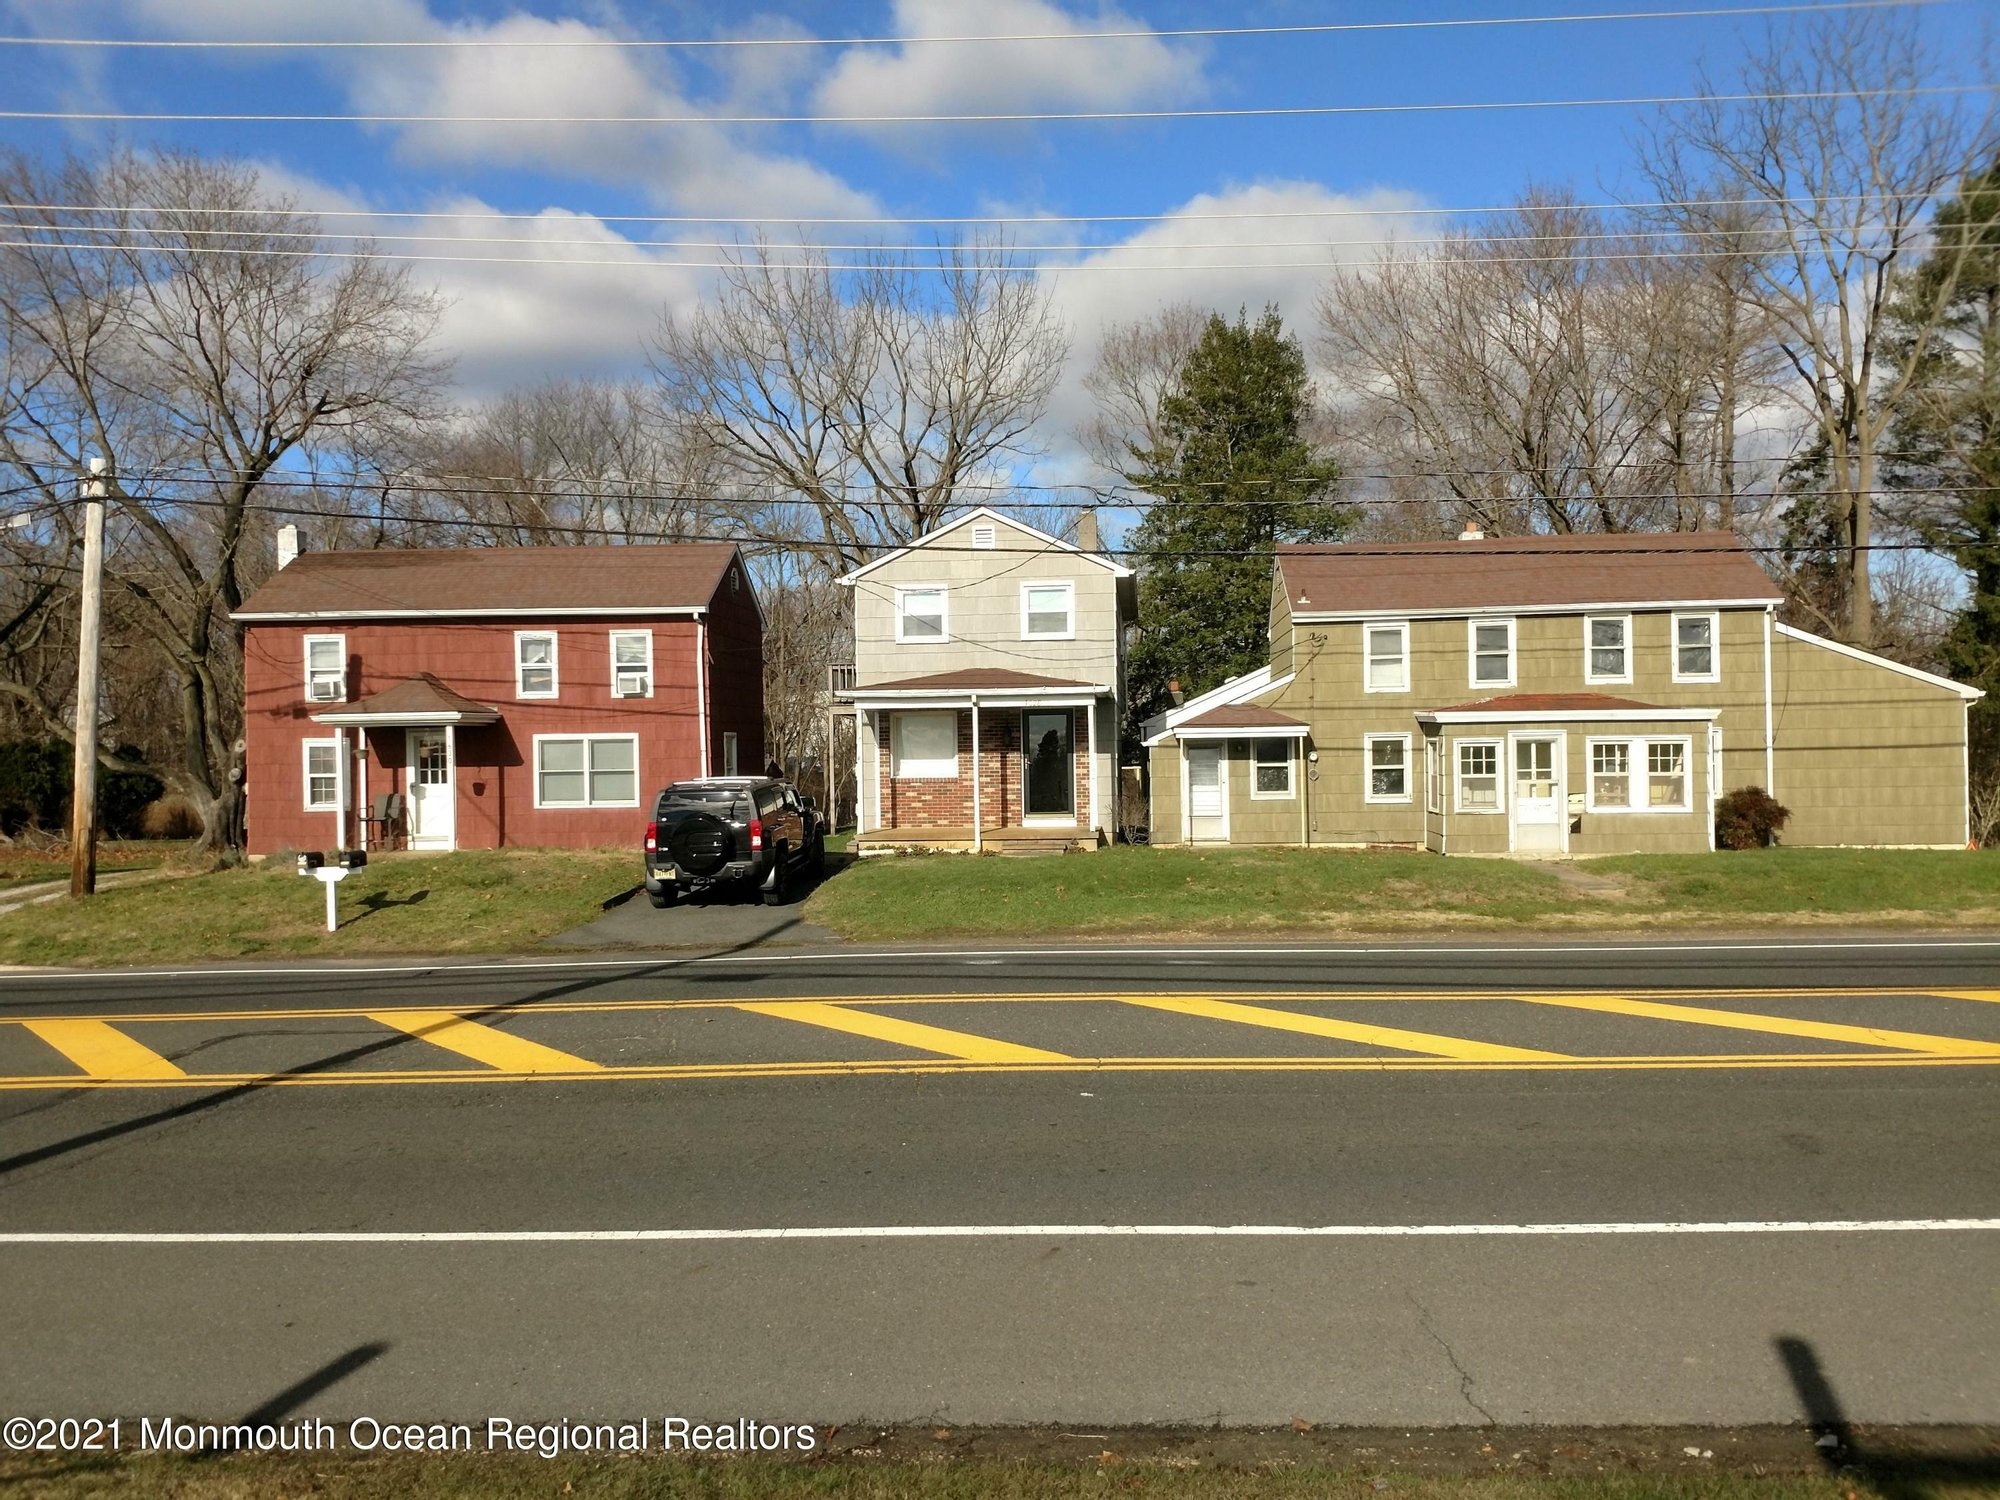 House in Robbinsville Township, New Jersey, United States 1